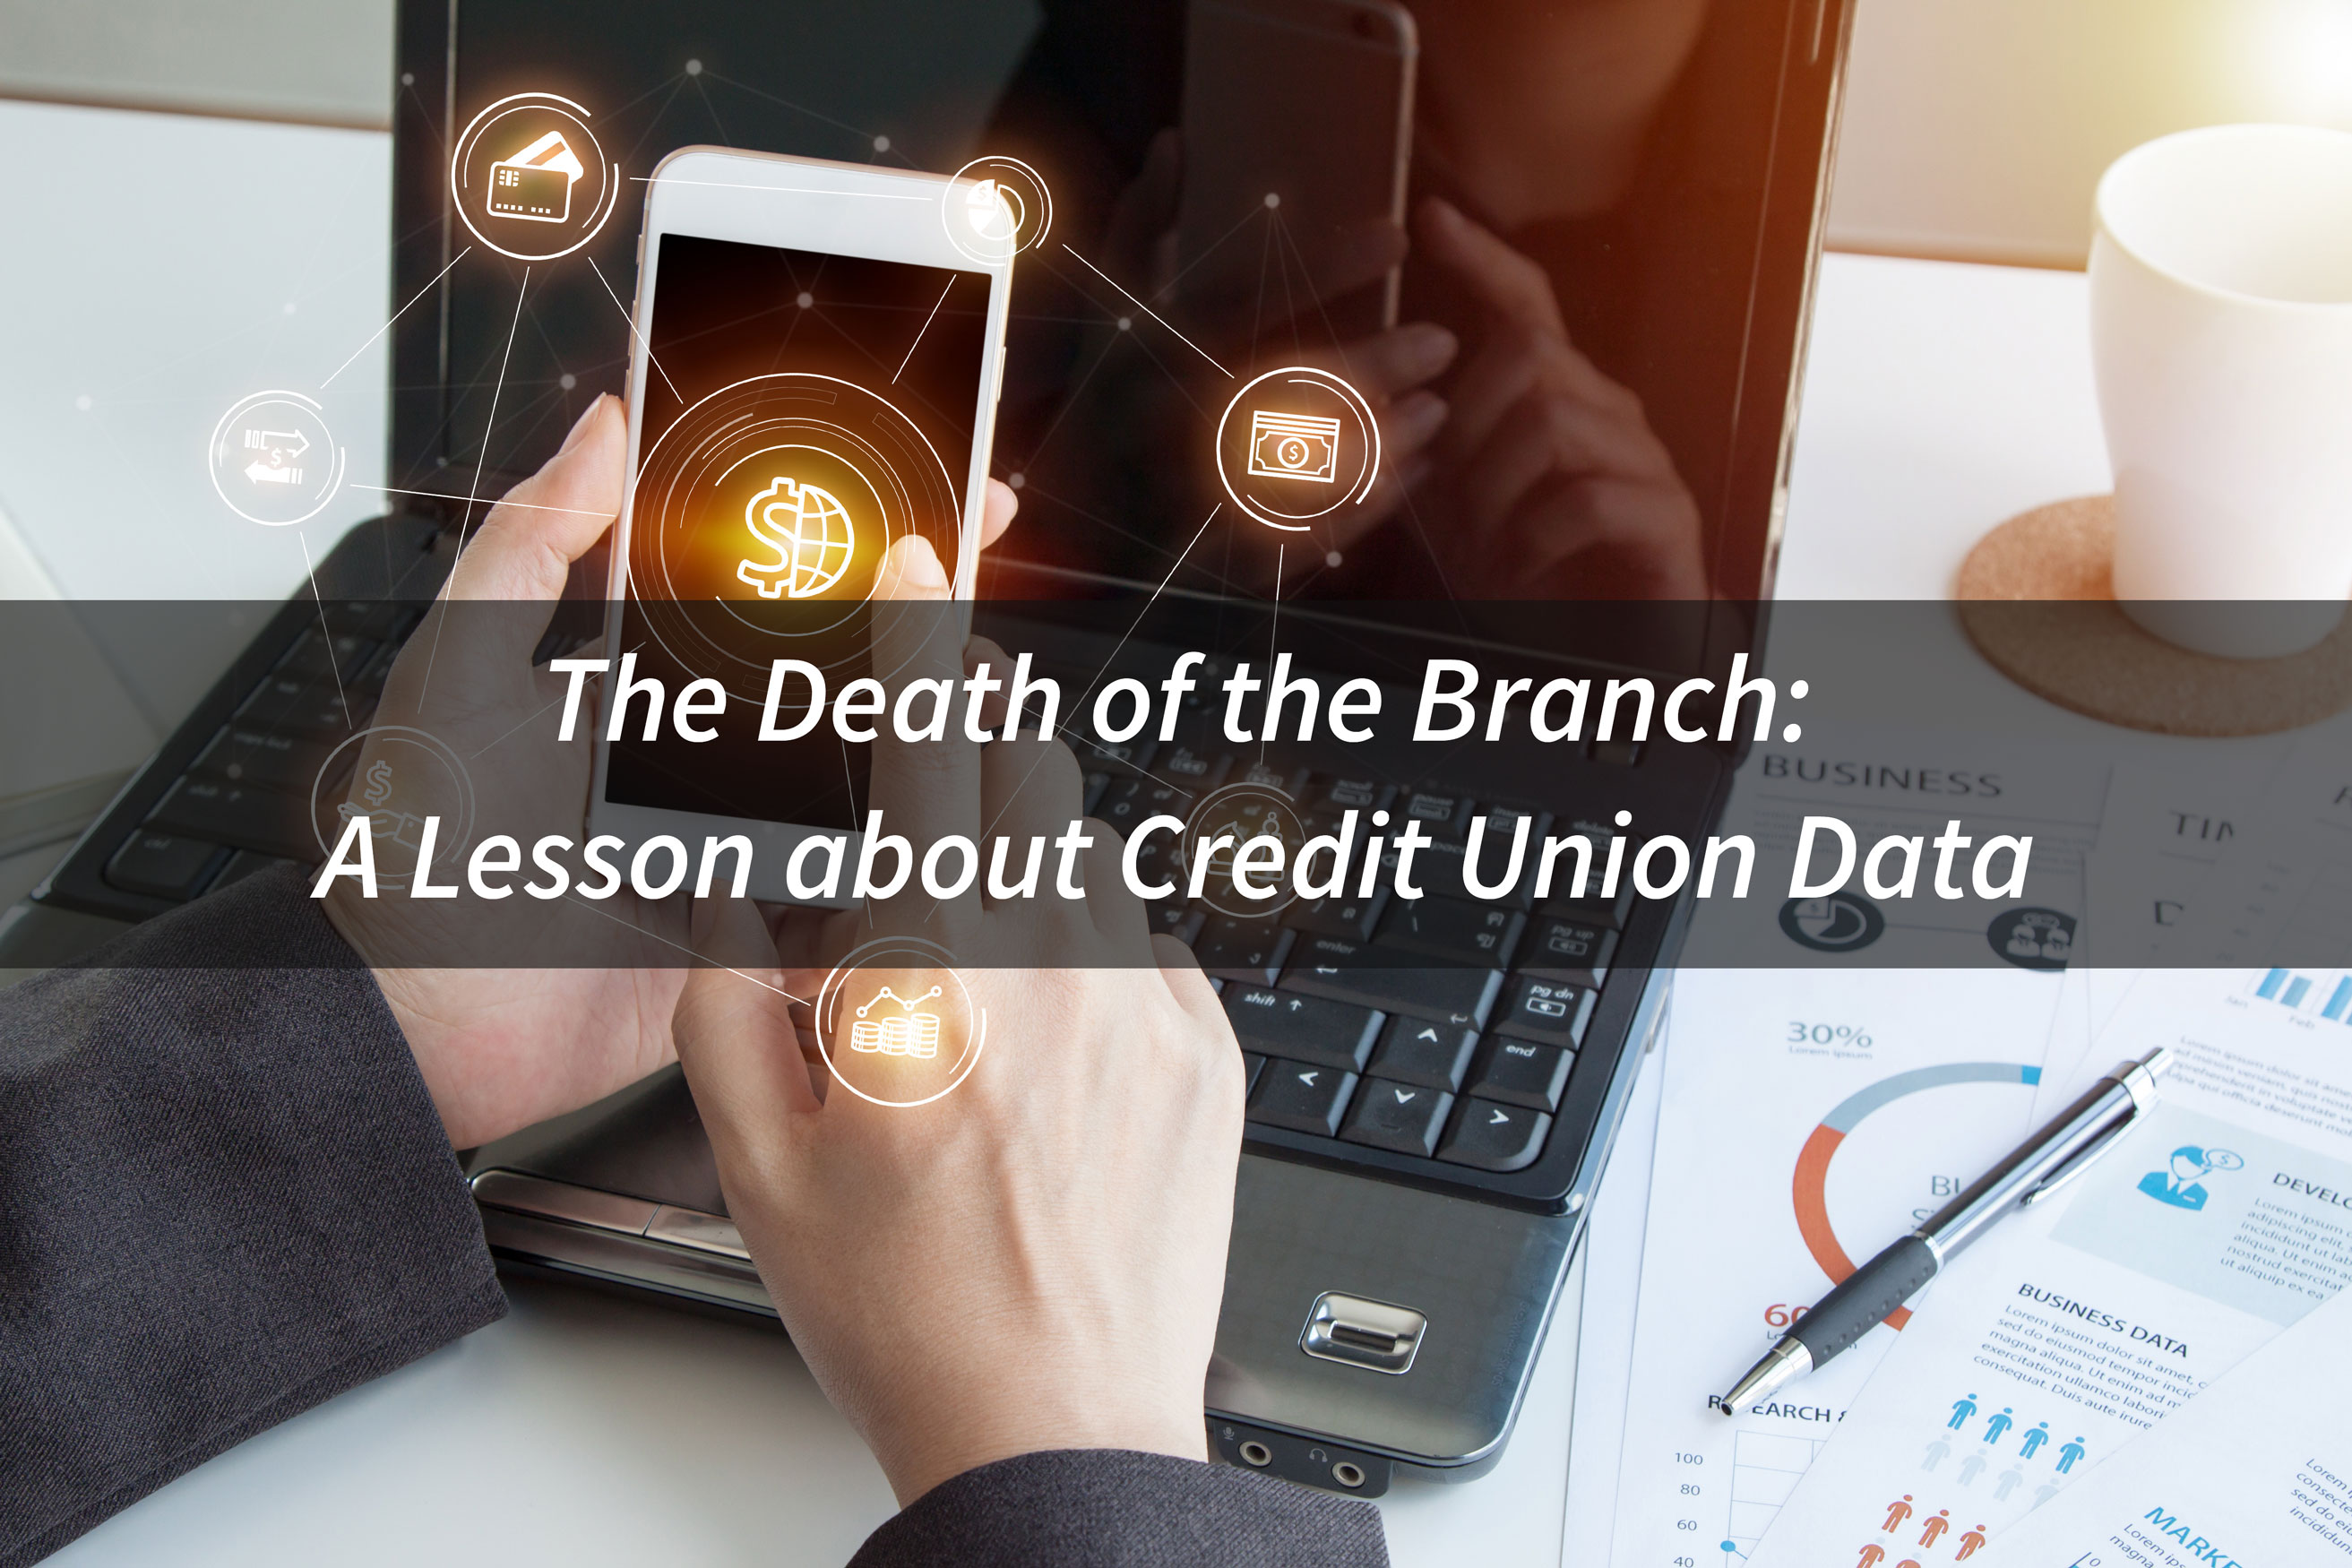 The-Death-of-the-Branch,-A-Lesson-about-Credit-Union-Data